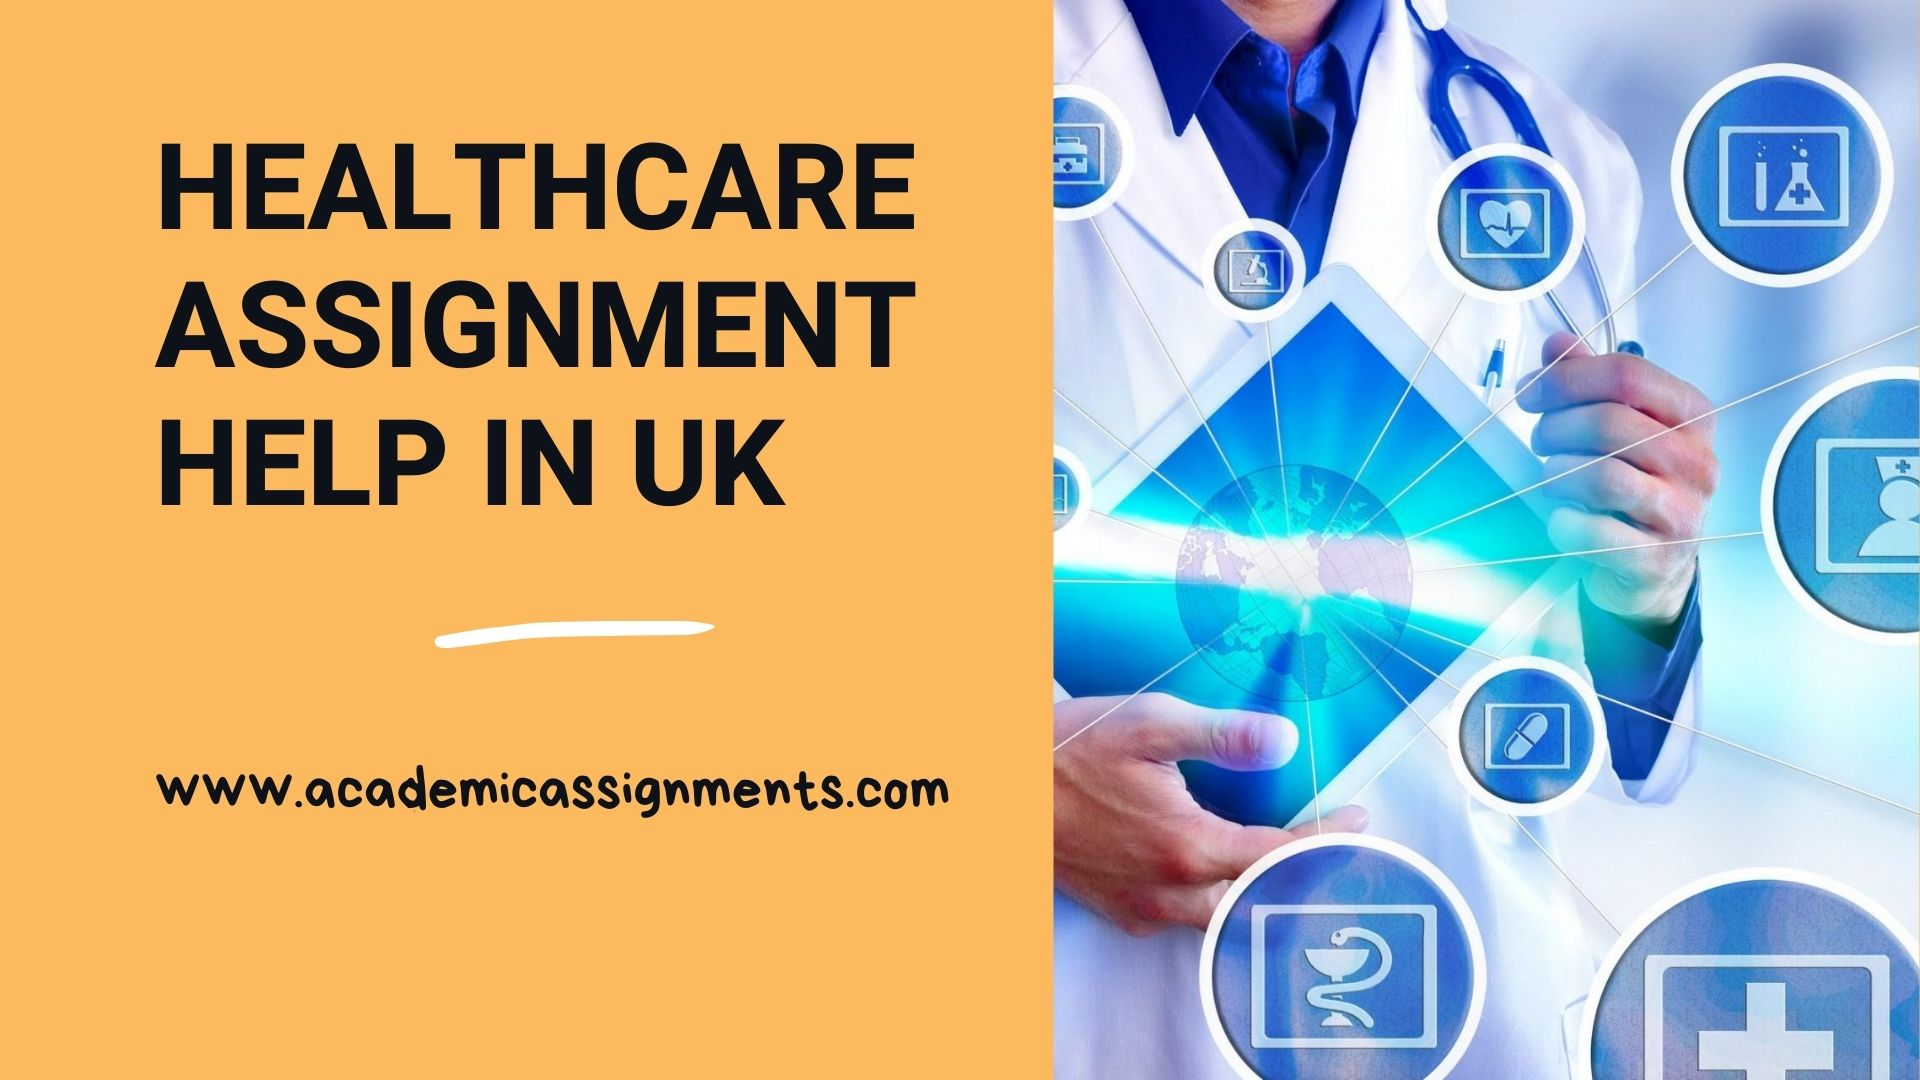 Healthcare Assignment Help in UK